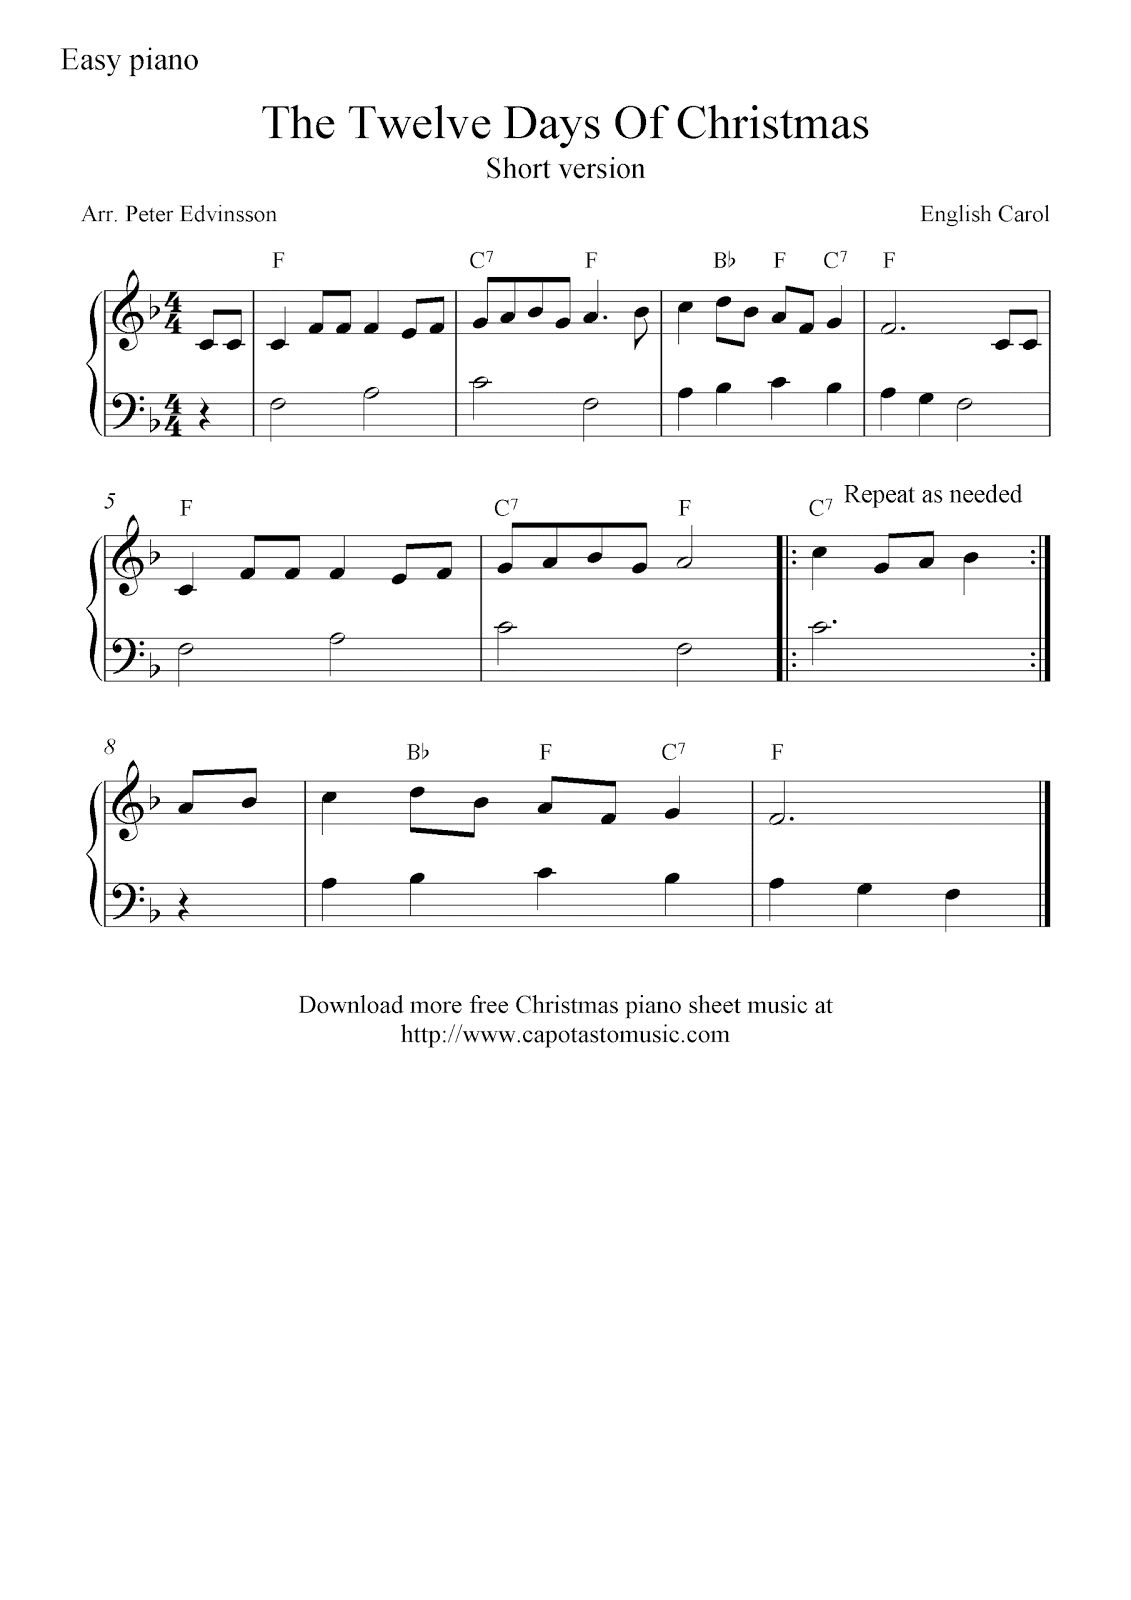 Free Christmas Piano Sheet Music Notes, The Twelve Days Of Christmas - Free Christmas Piano Sheet Music For Beginners Printable